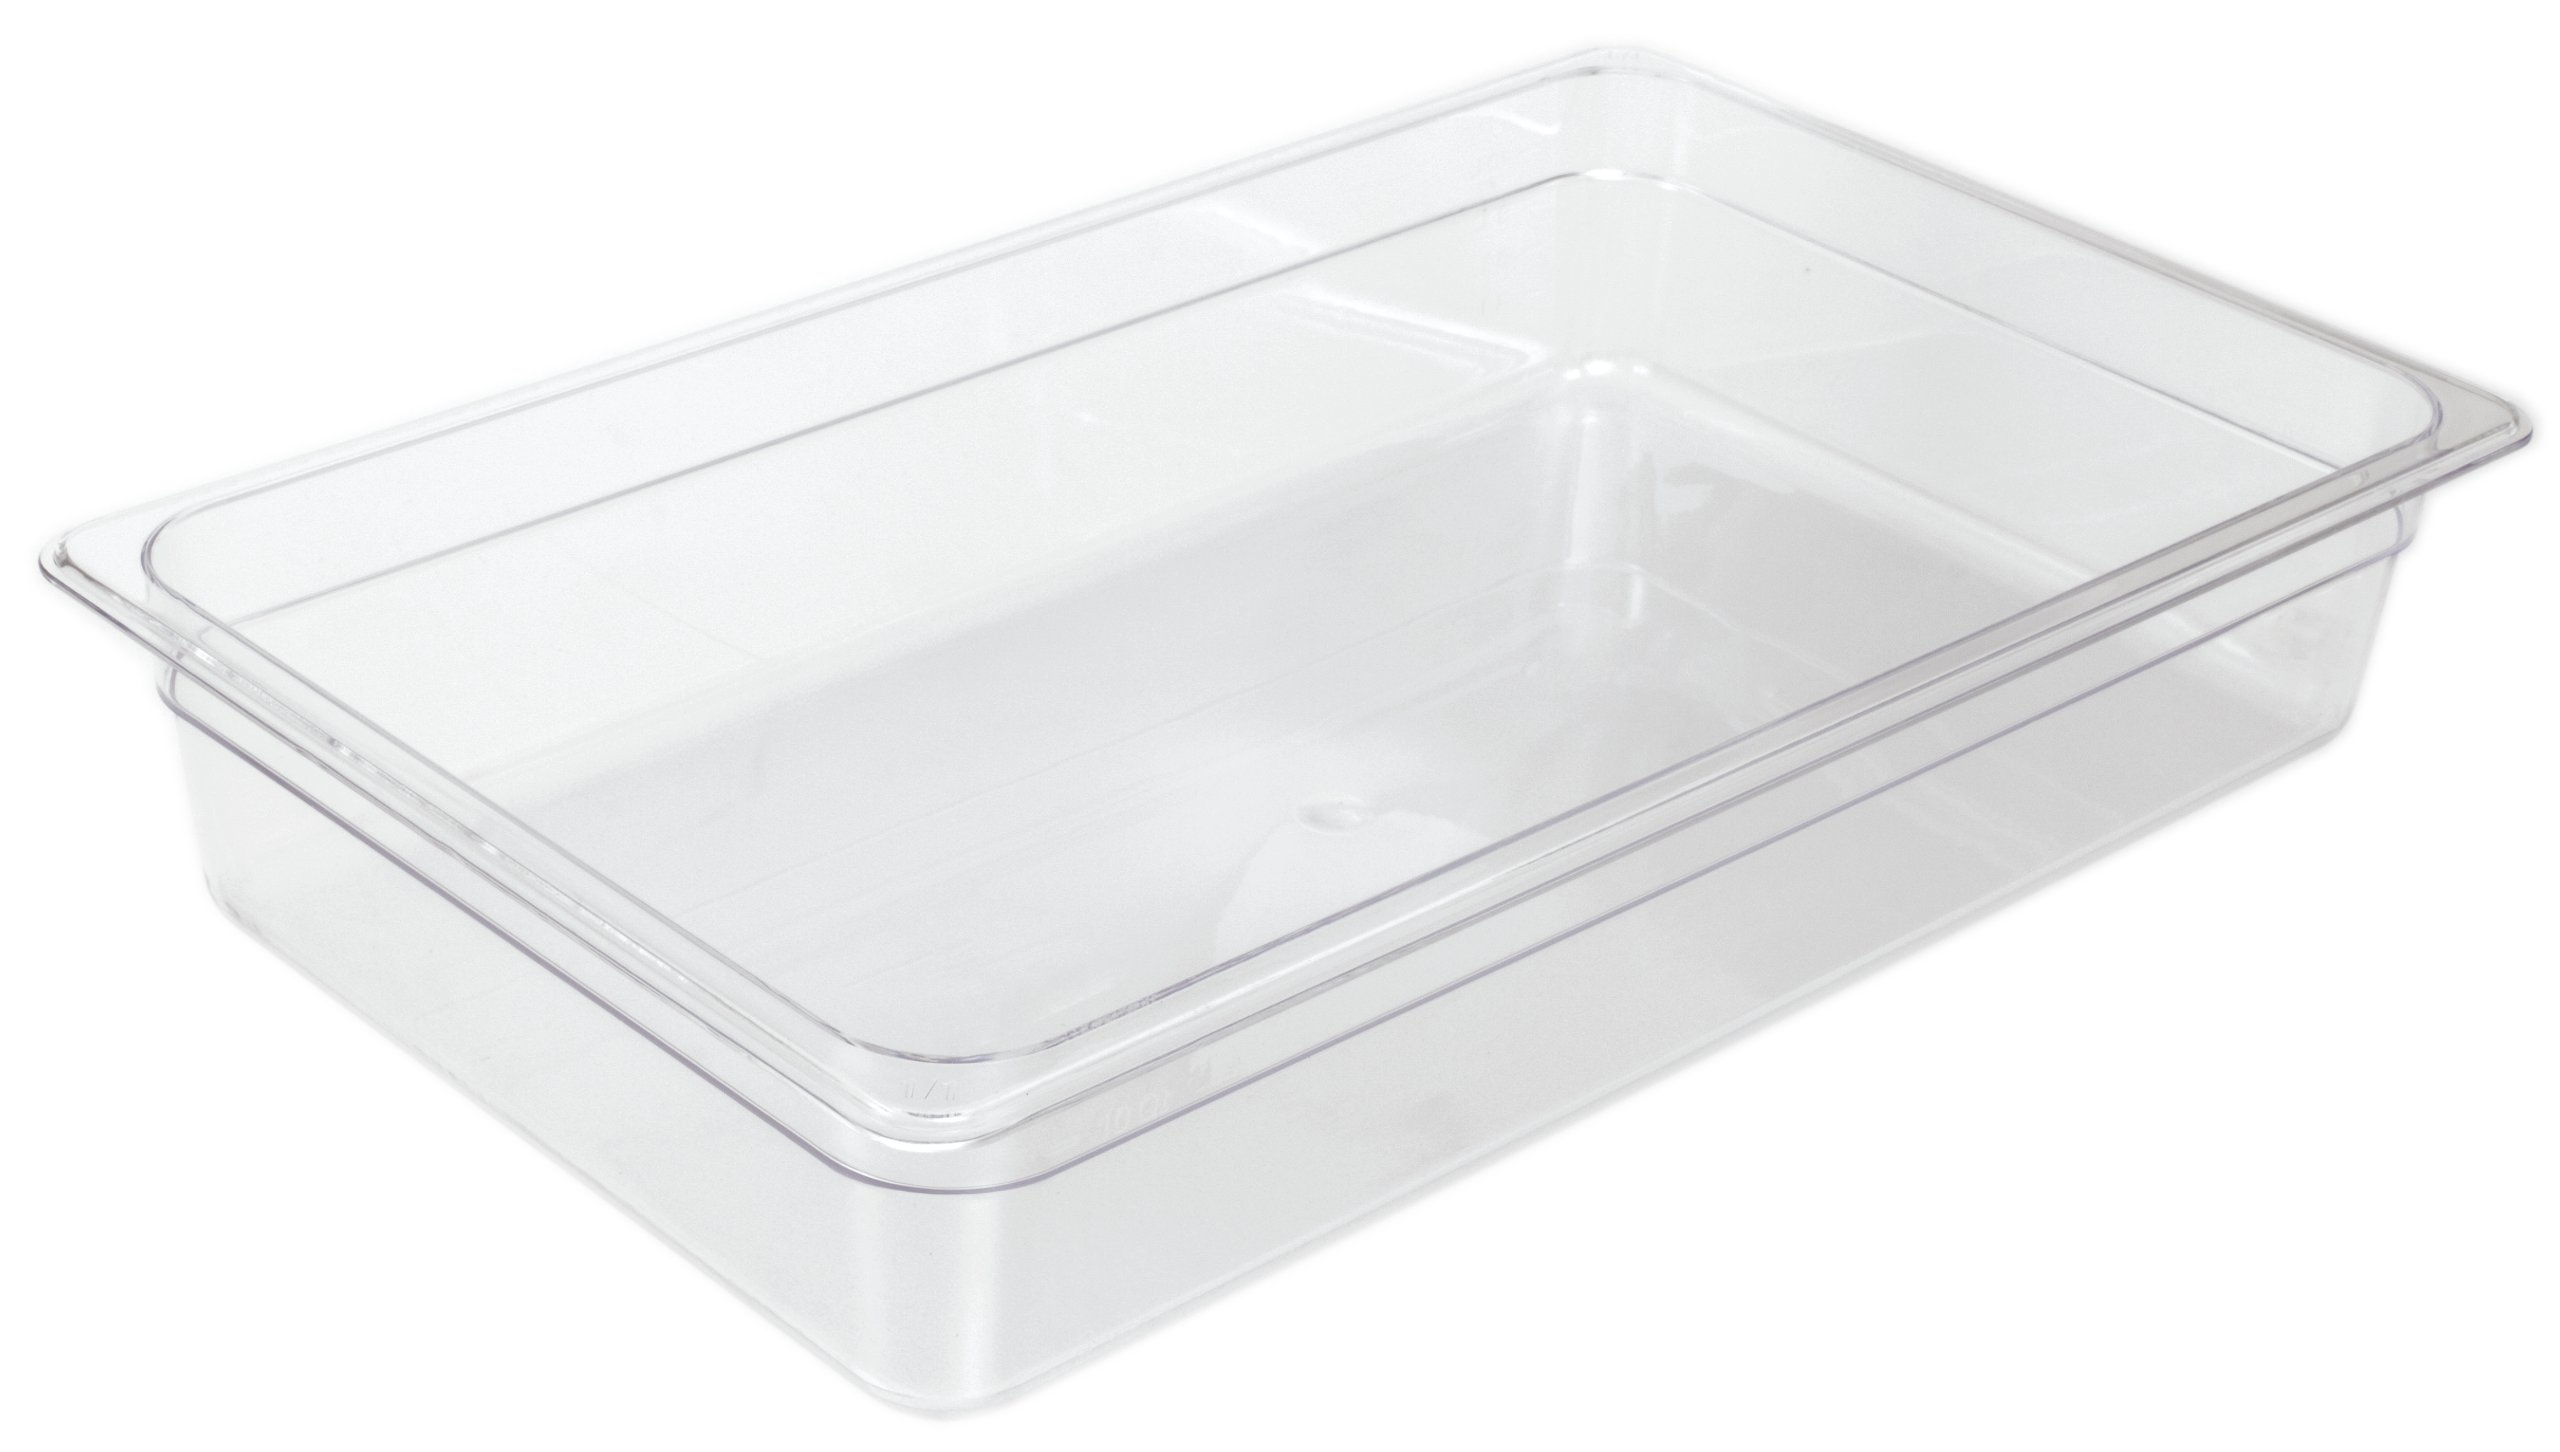 Crestware Commercial Grade, FP46, Polycarbonate Food Pan Fourth Size 6'', Set of 4